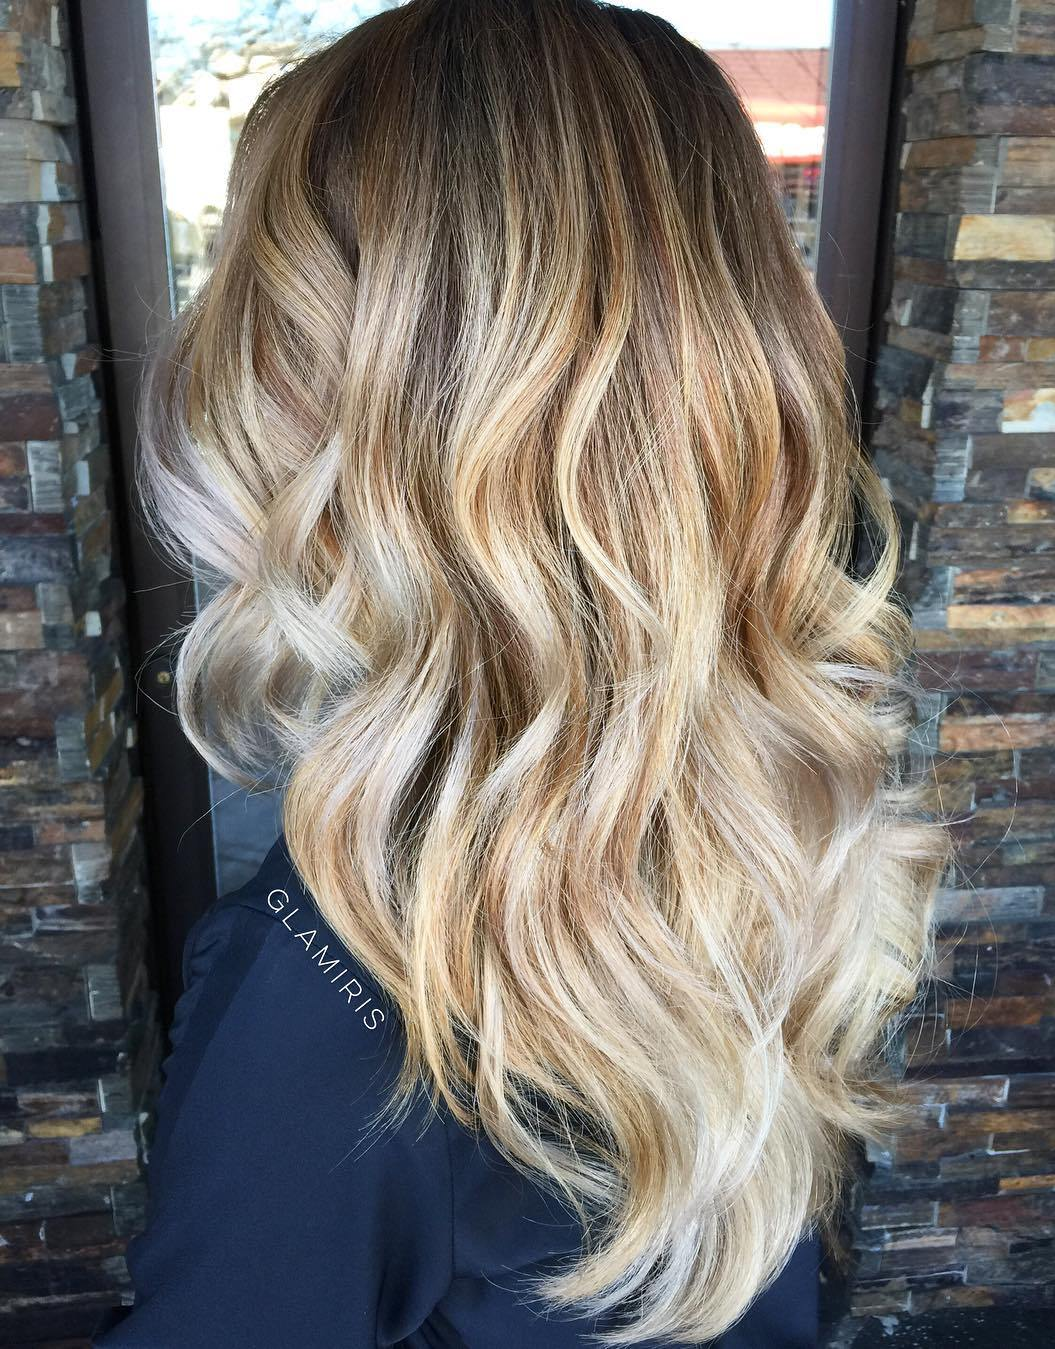 Wavy Layered V Cut with Blonde Colormelt and Balayage Highlights